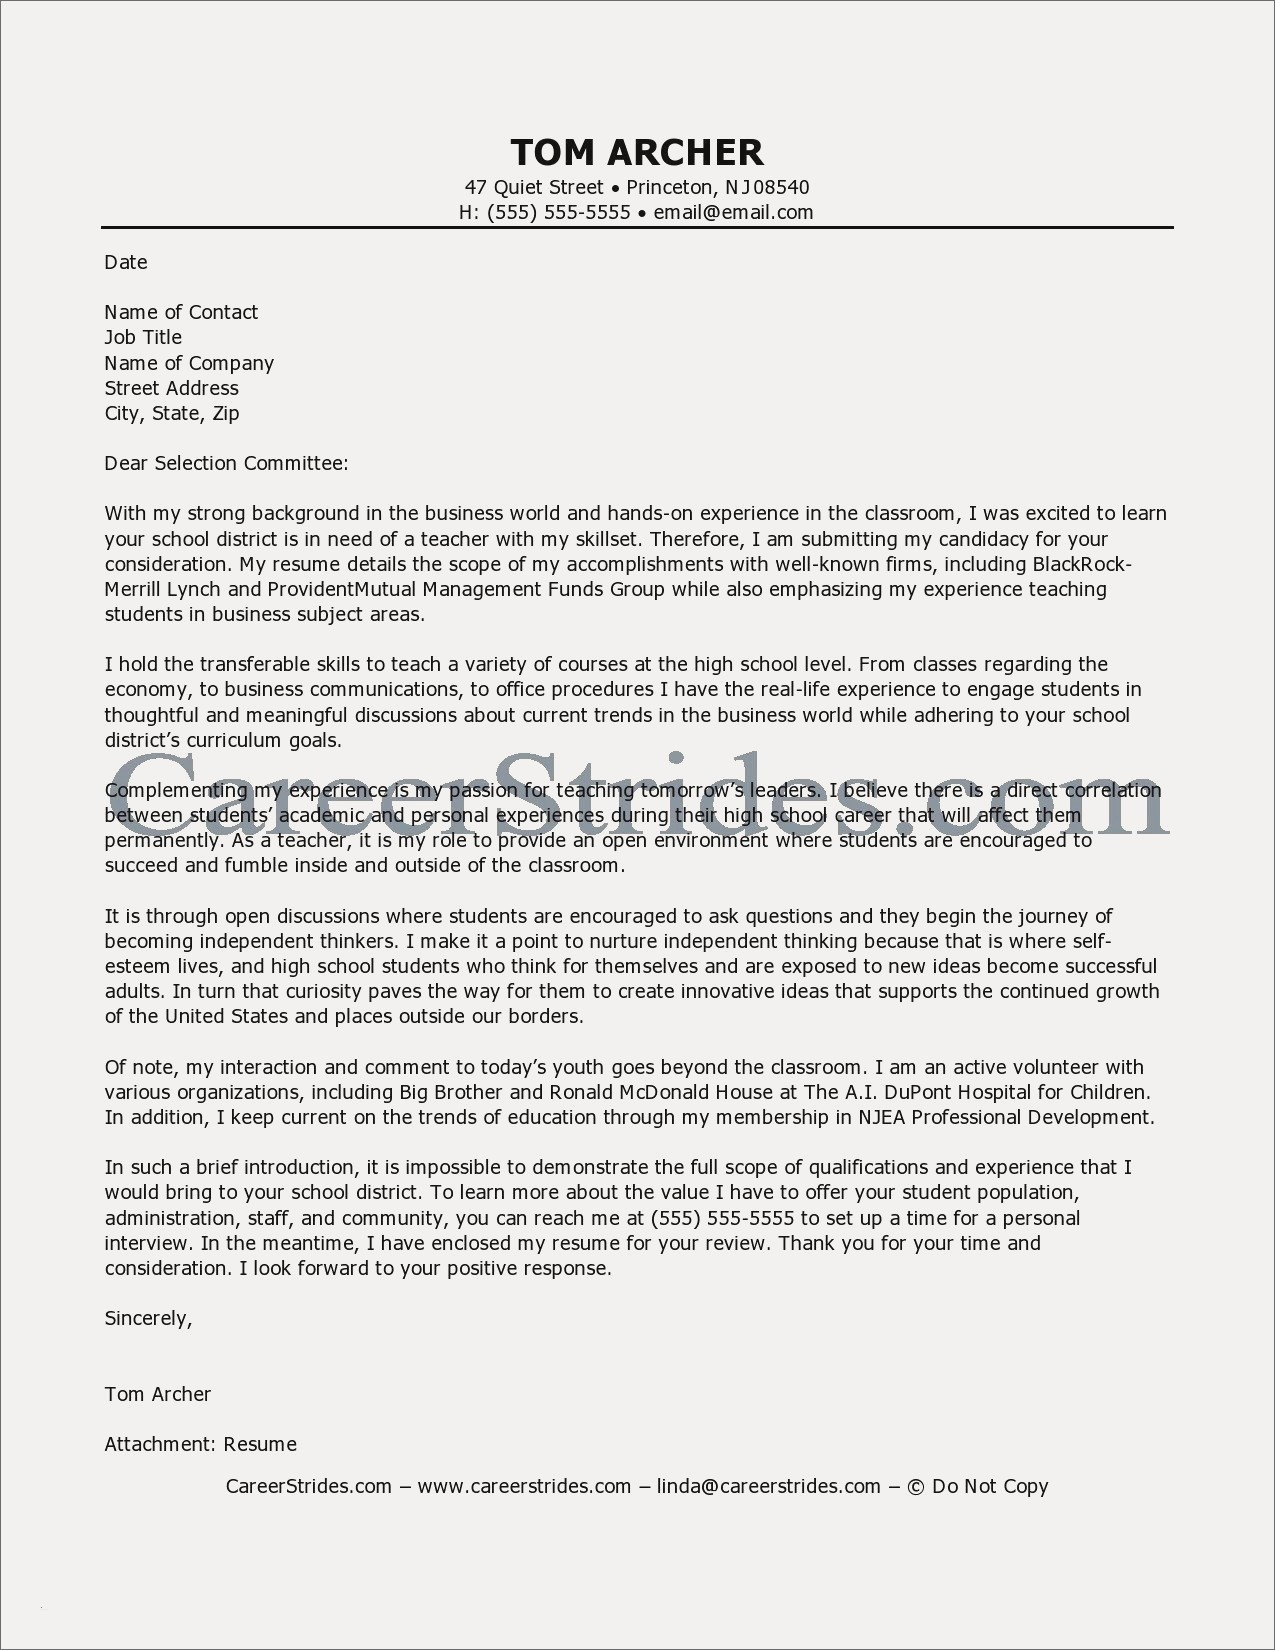 Teacher Resume Skills - Academic Resume Examples New Teacher Resume Example Awesome Resume